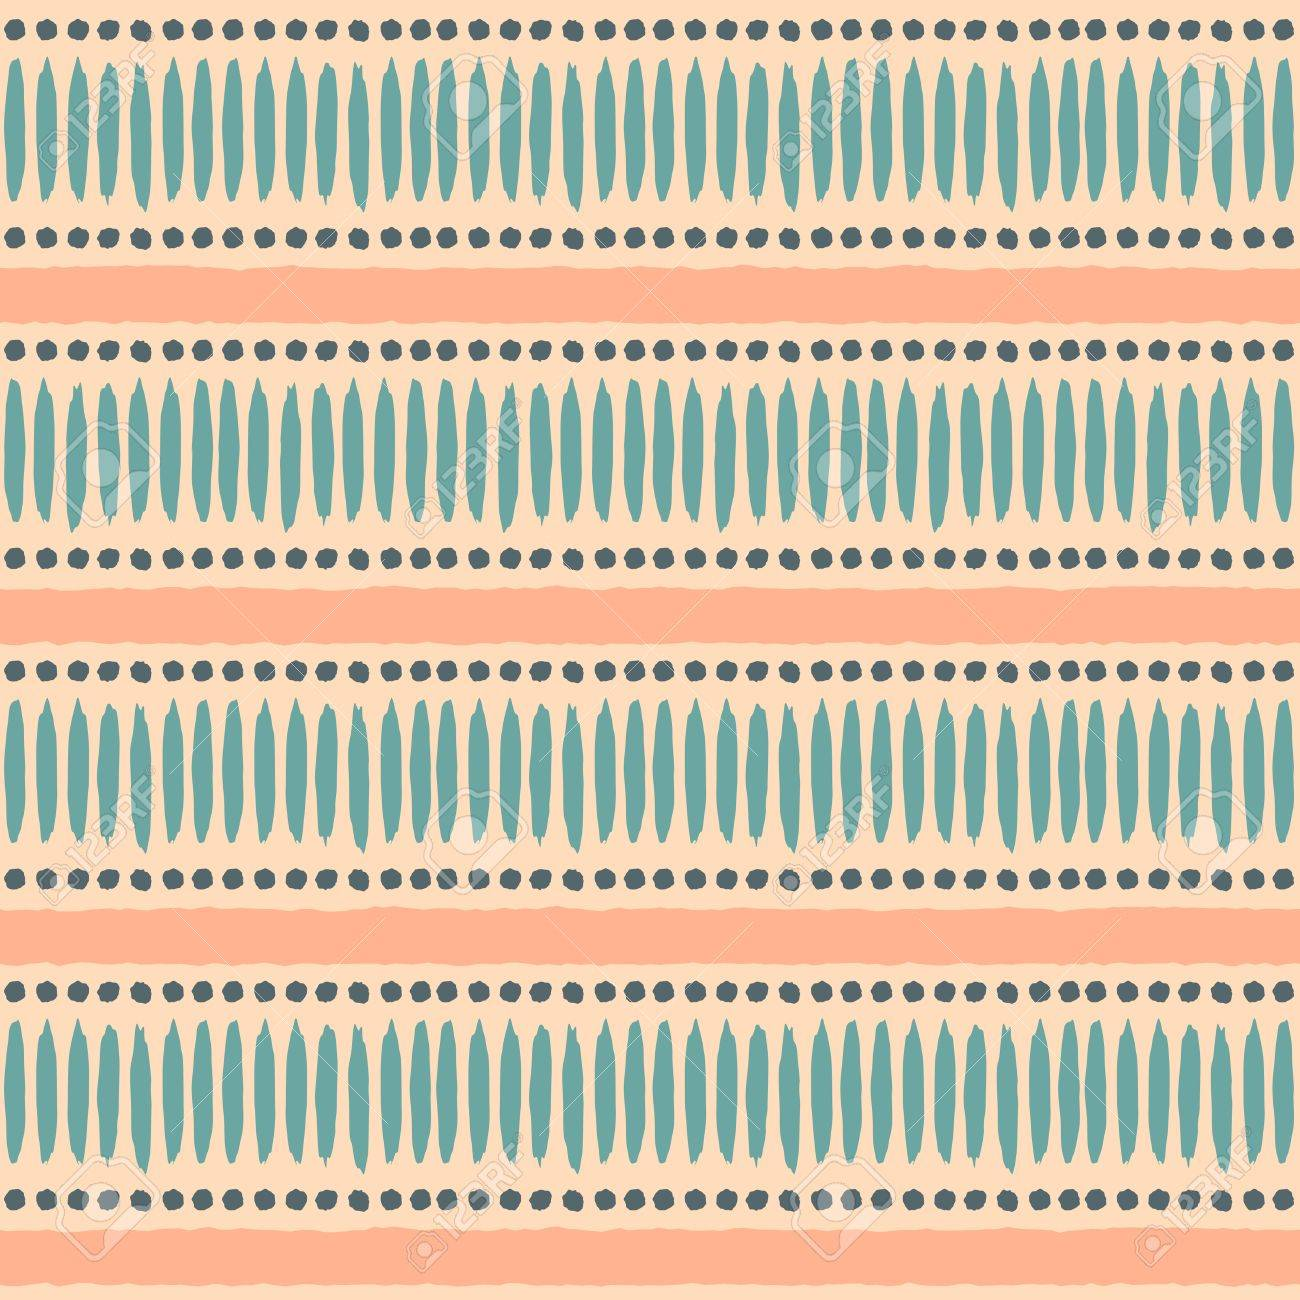 Seamless ethnic pattern in pastel orange and blue. Stock Vector - 22162964